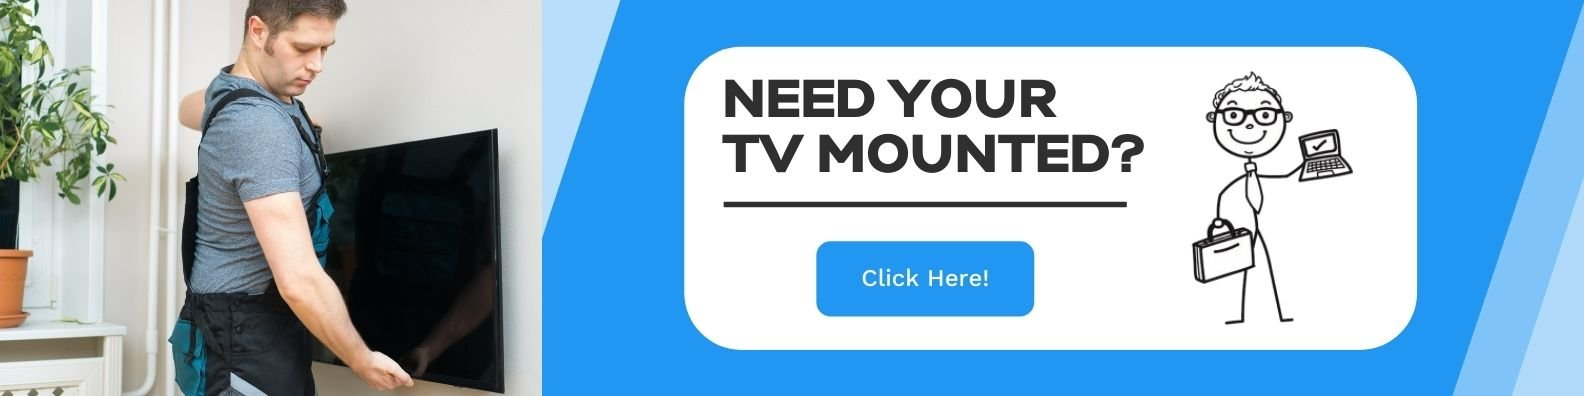 Get a quote for TV mounting near you